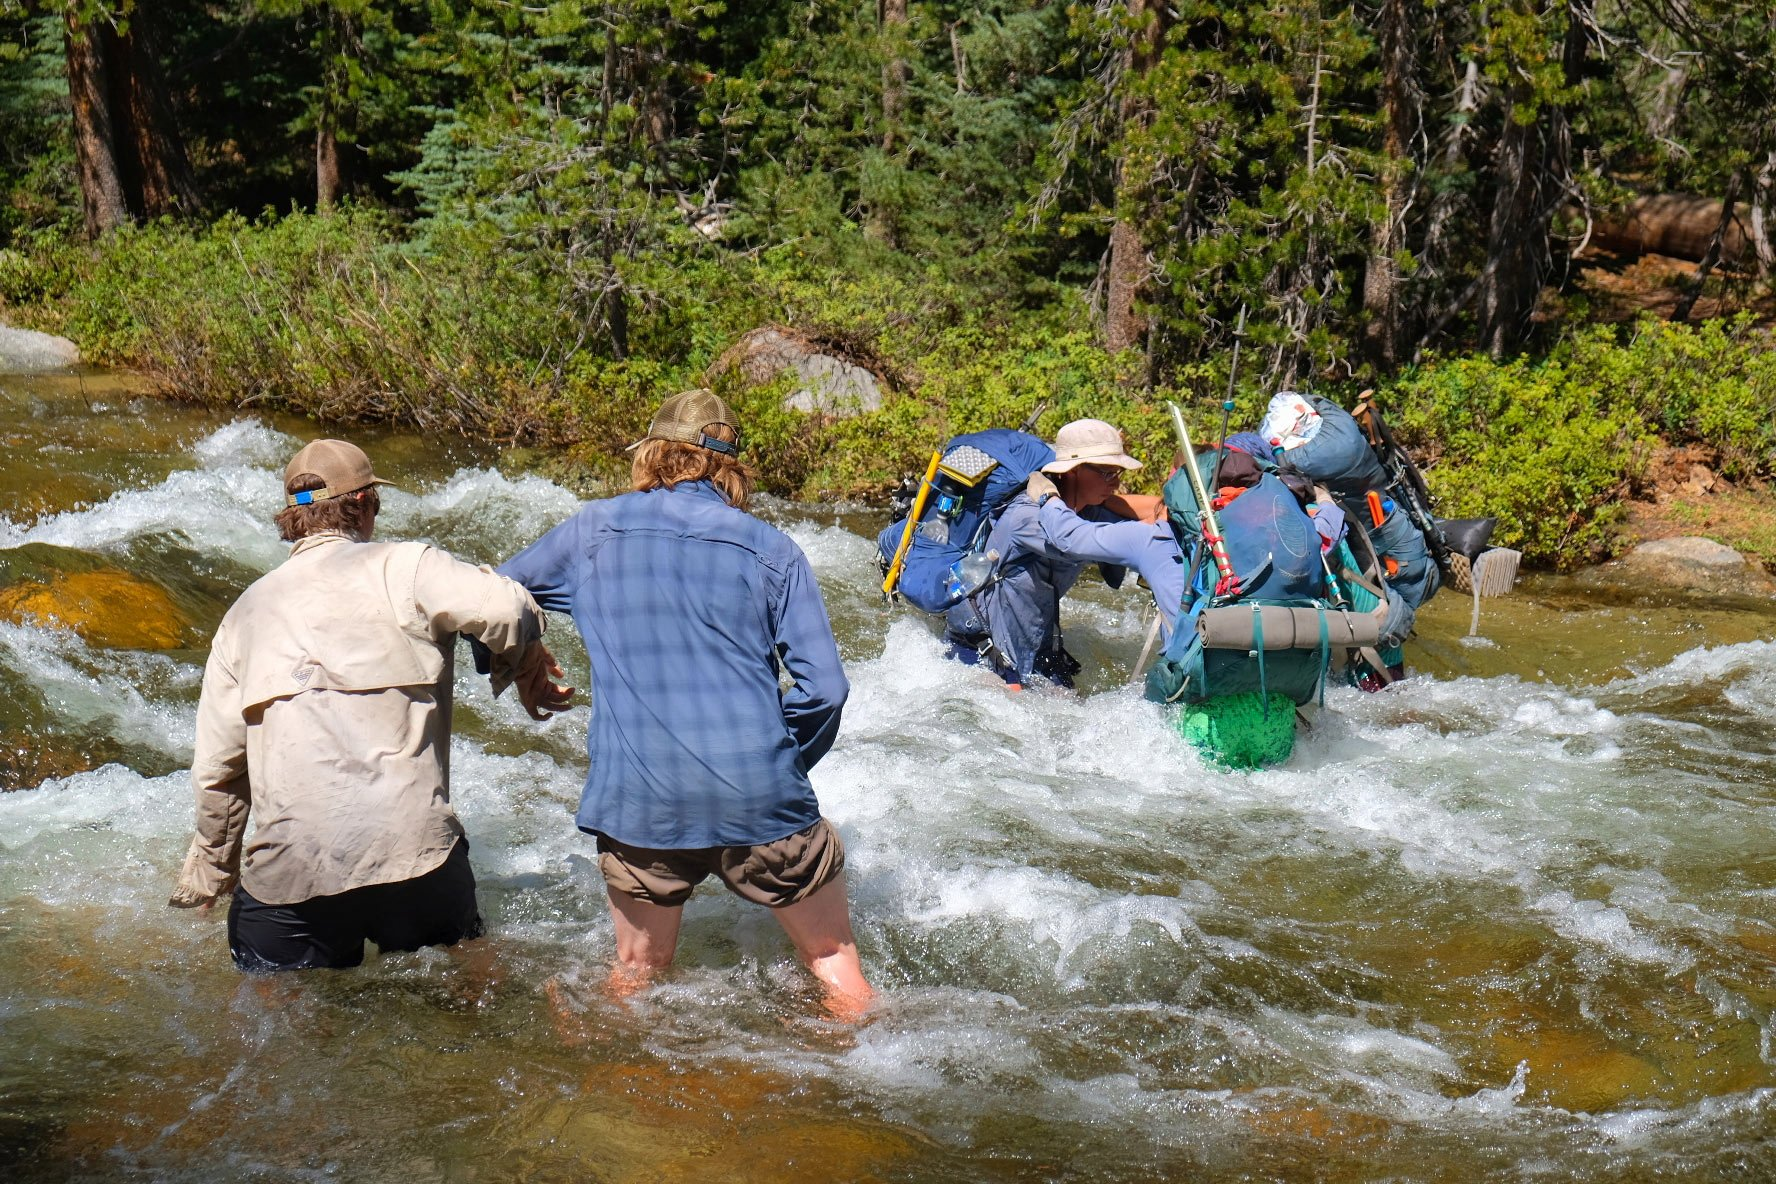 Stream crossing safety while hiking and backpacking